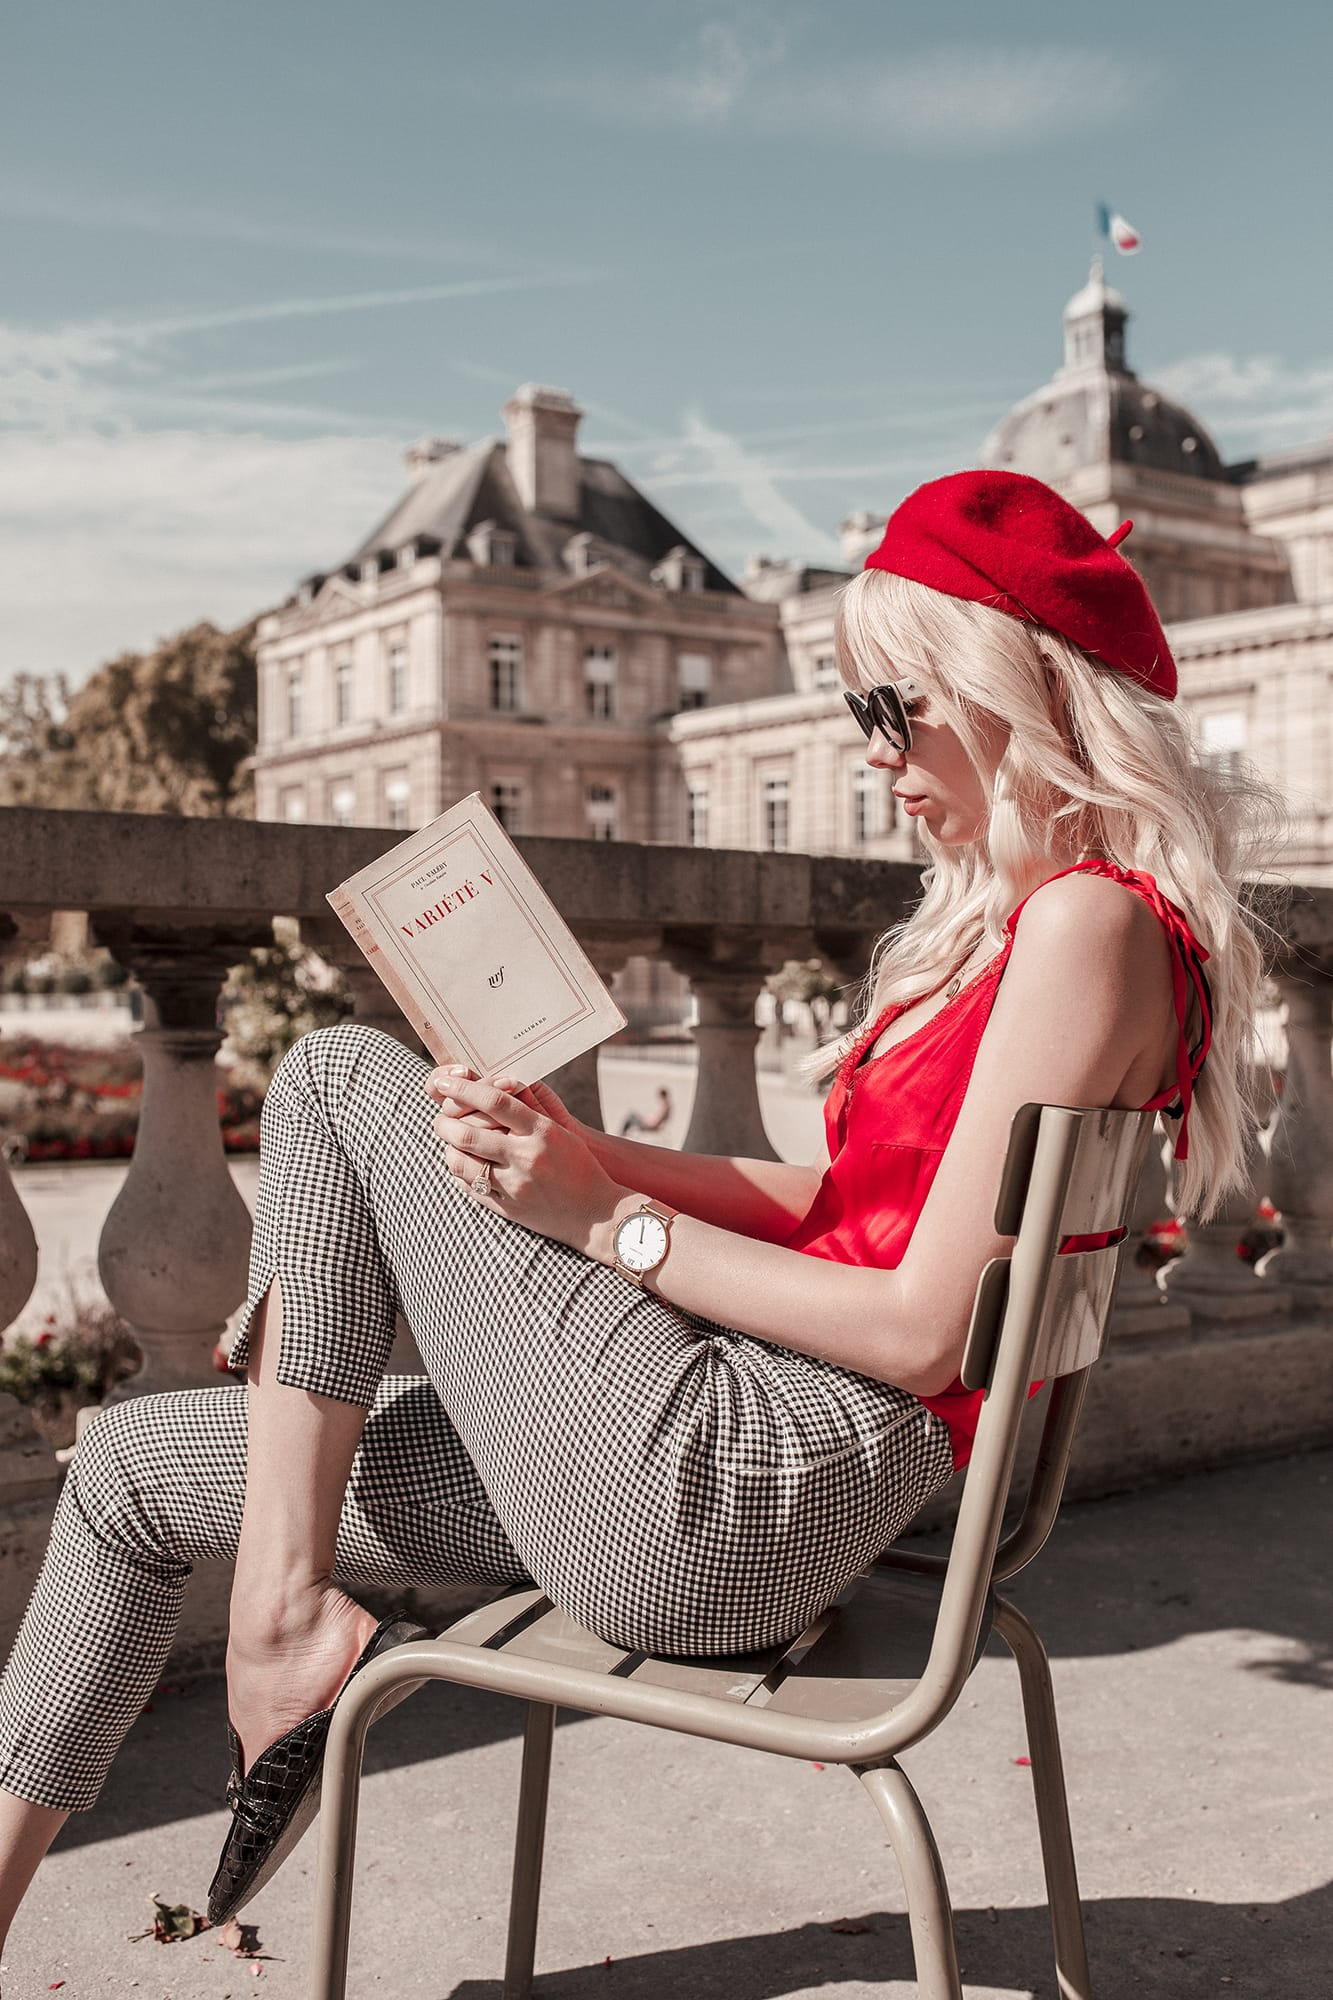 Sarah Loven - Paris - Luxembourg Gardens - Red Beret - French Style